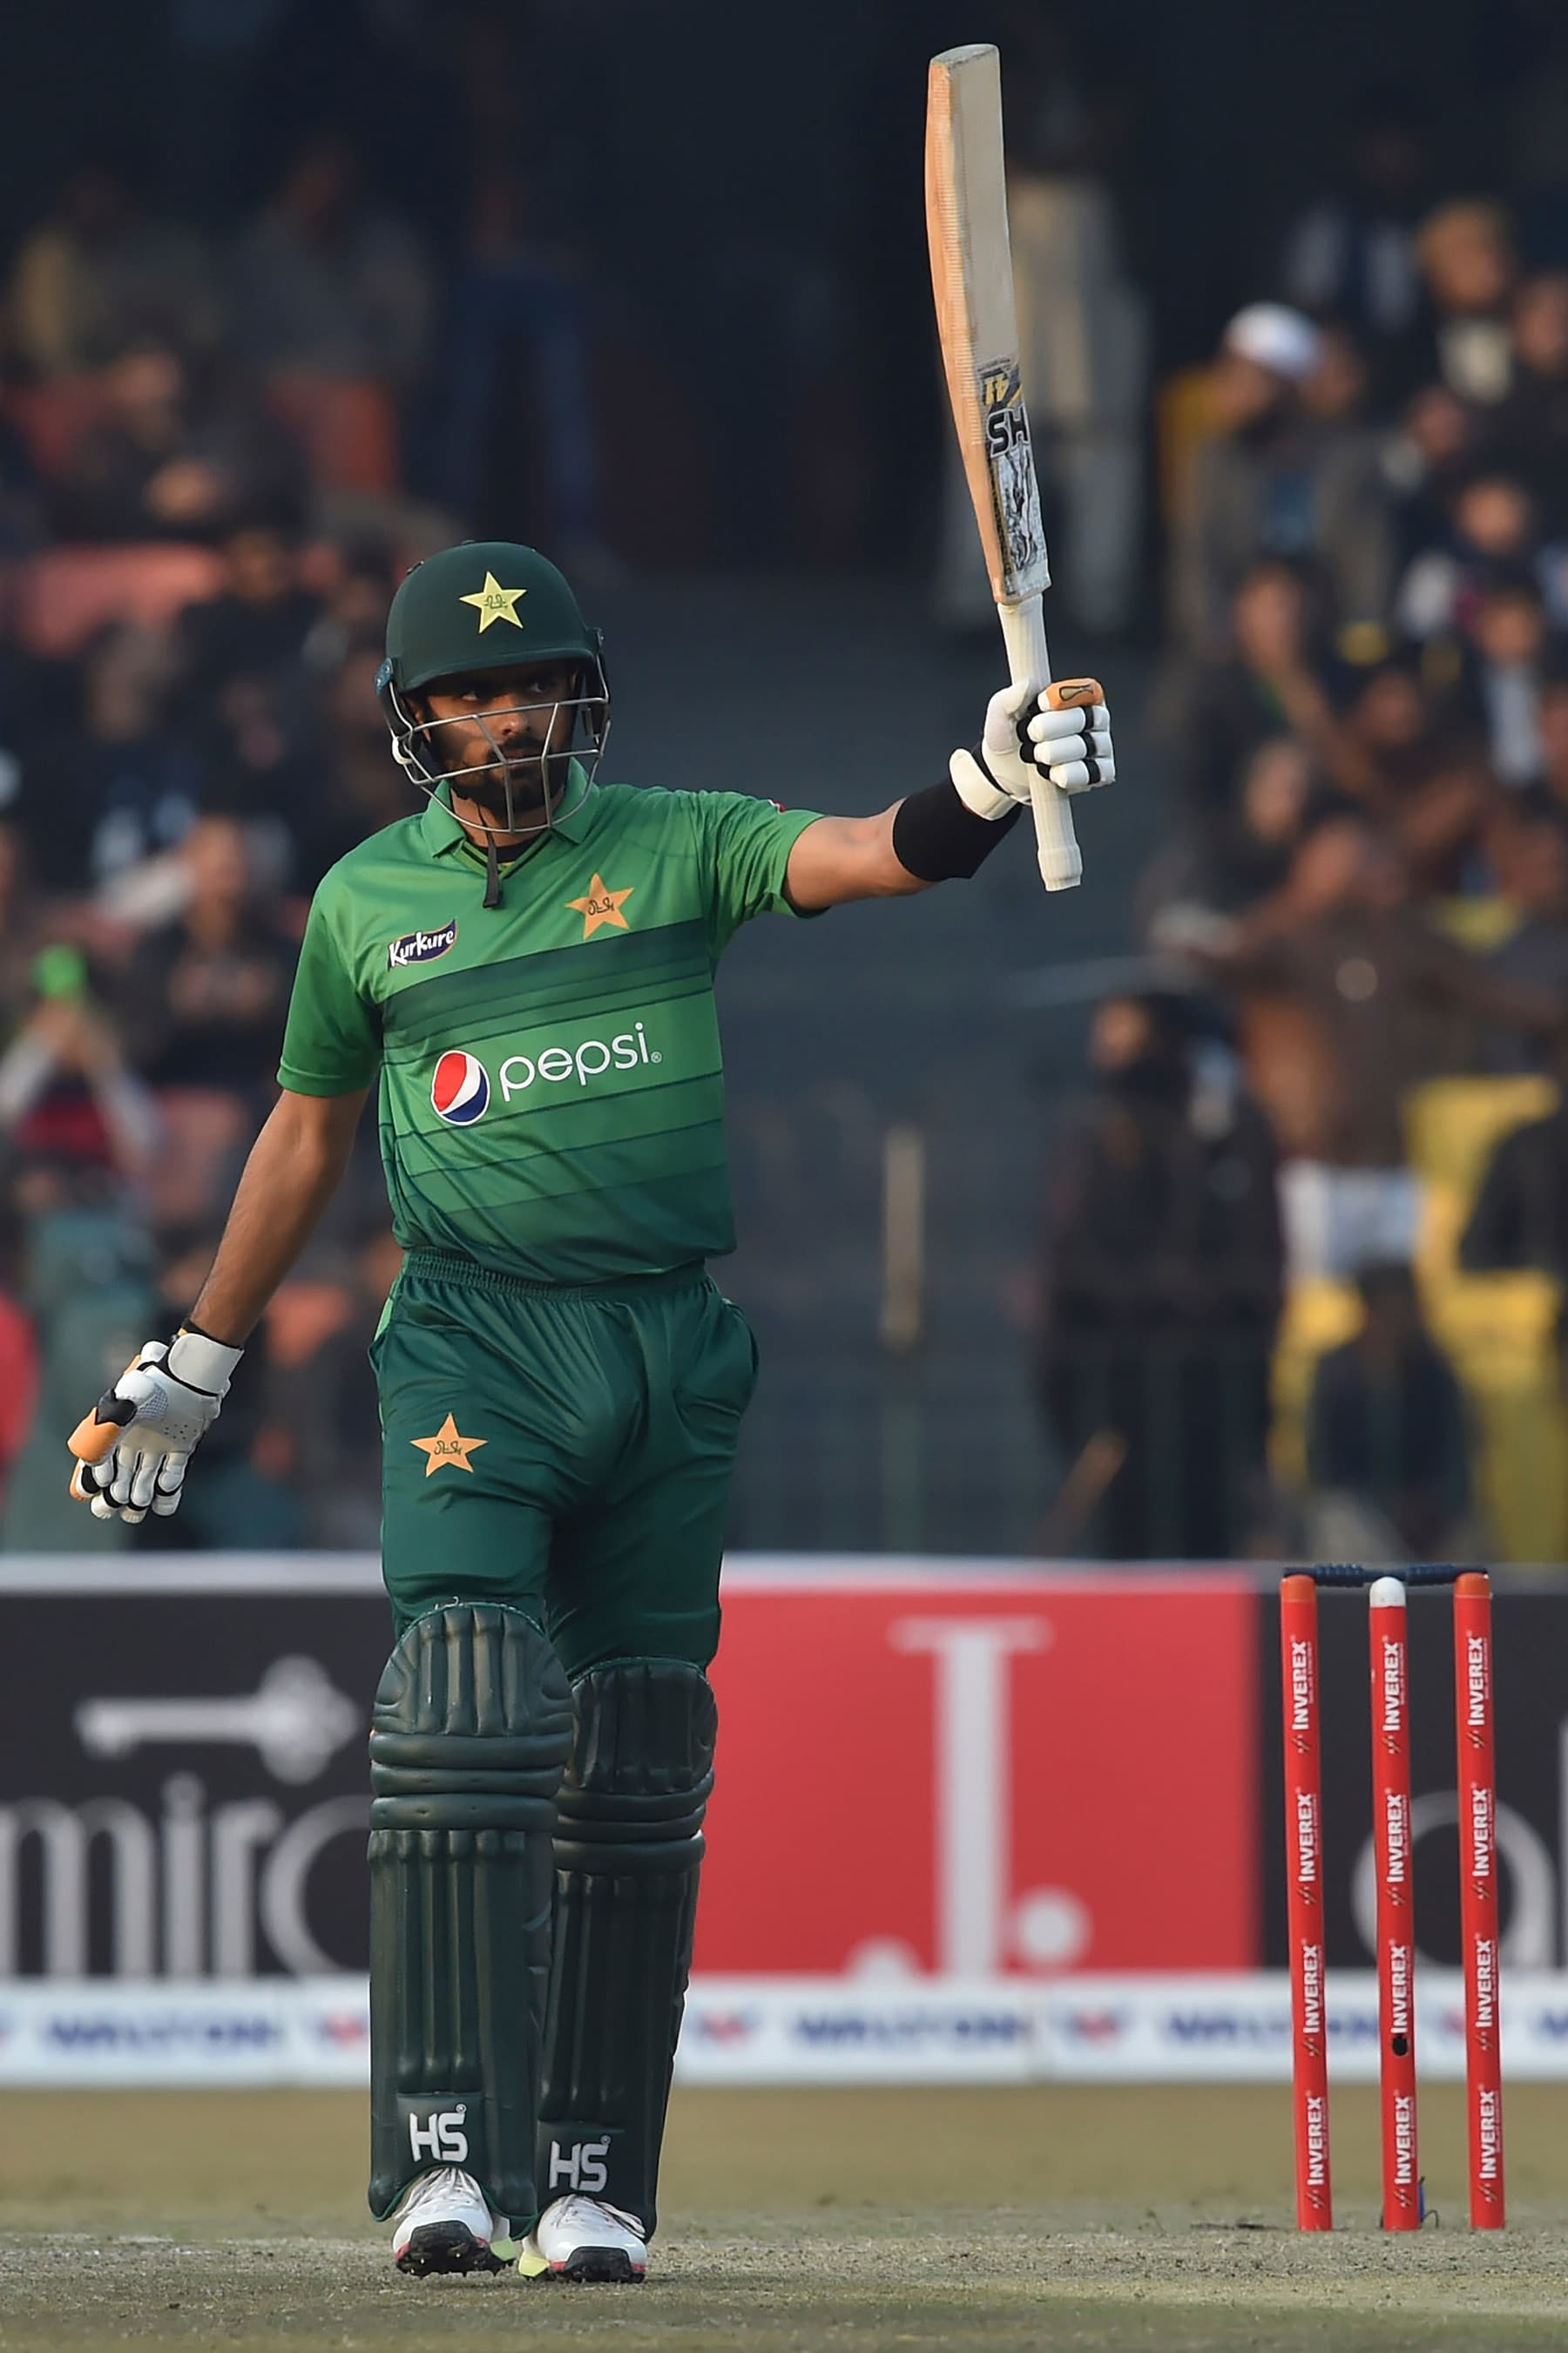 Pakistan captain Babar Azam celebrates scoring a half century (50 runs) at the Gaddafi Cricket Stadium in Lahore on Saturday. — AFP